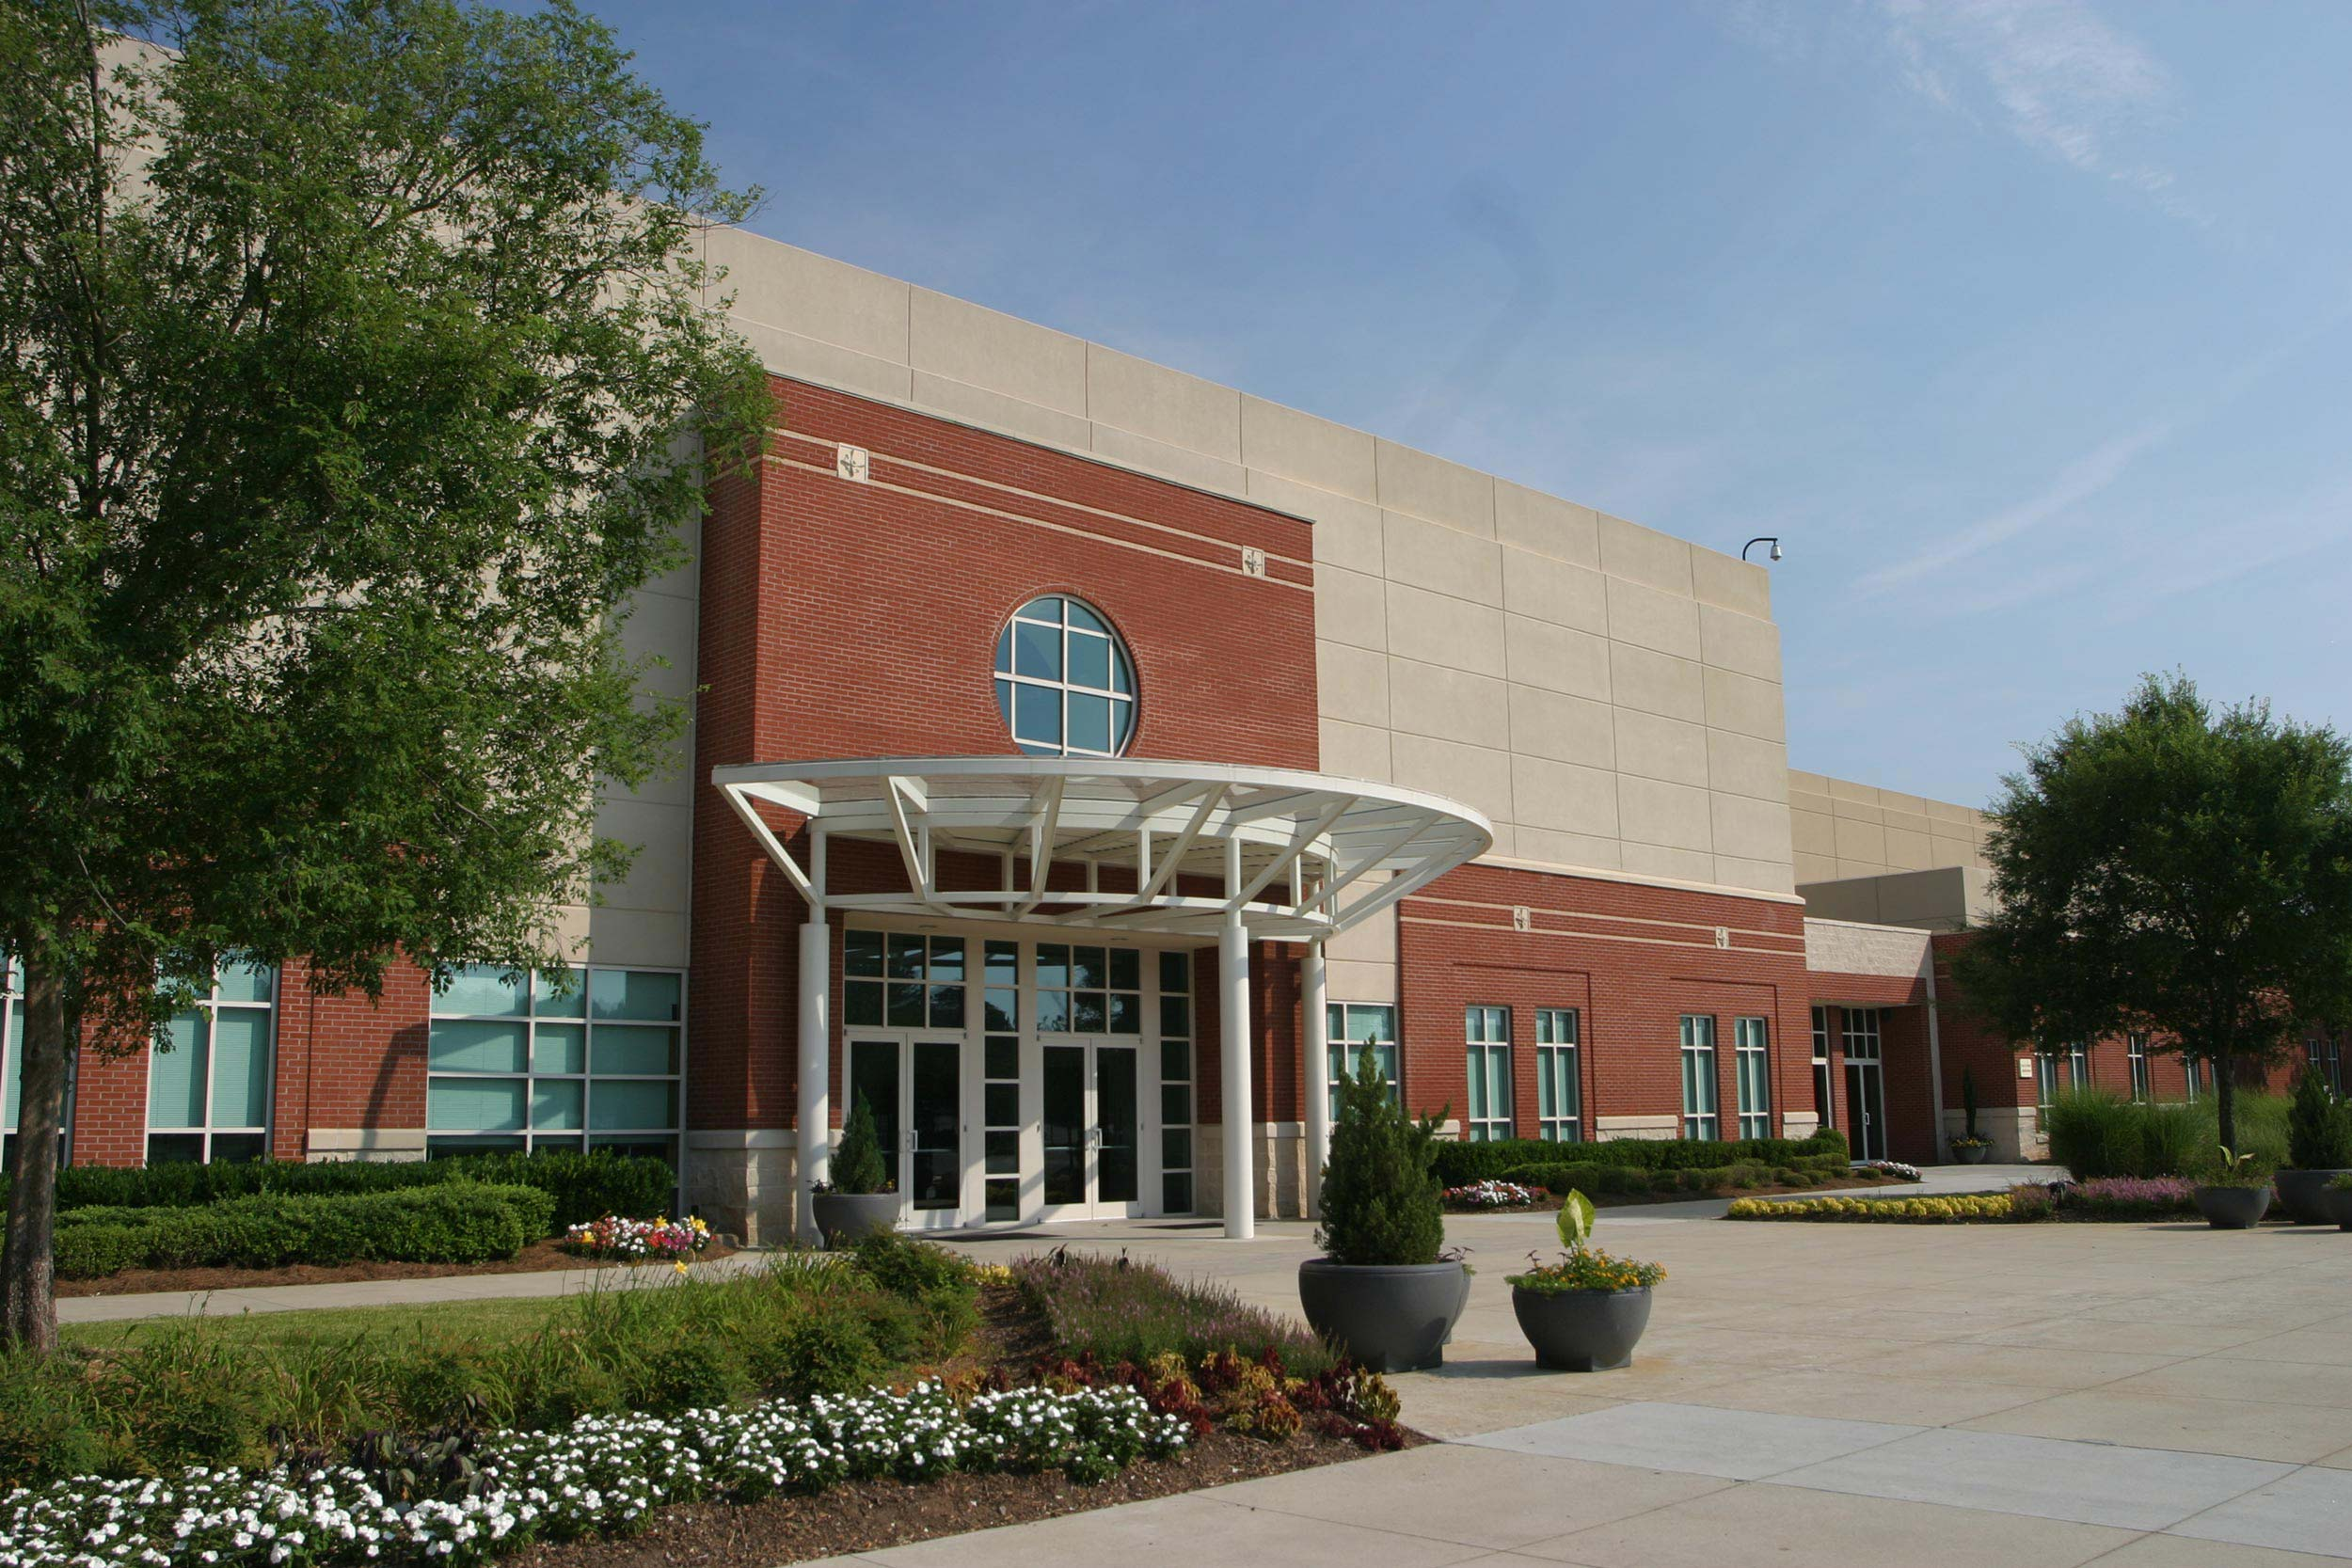 NorthPointChurch_Entry.JPG